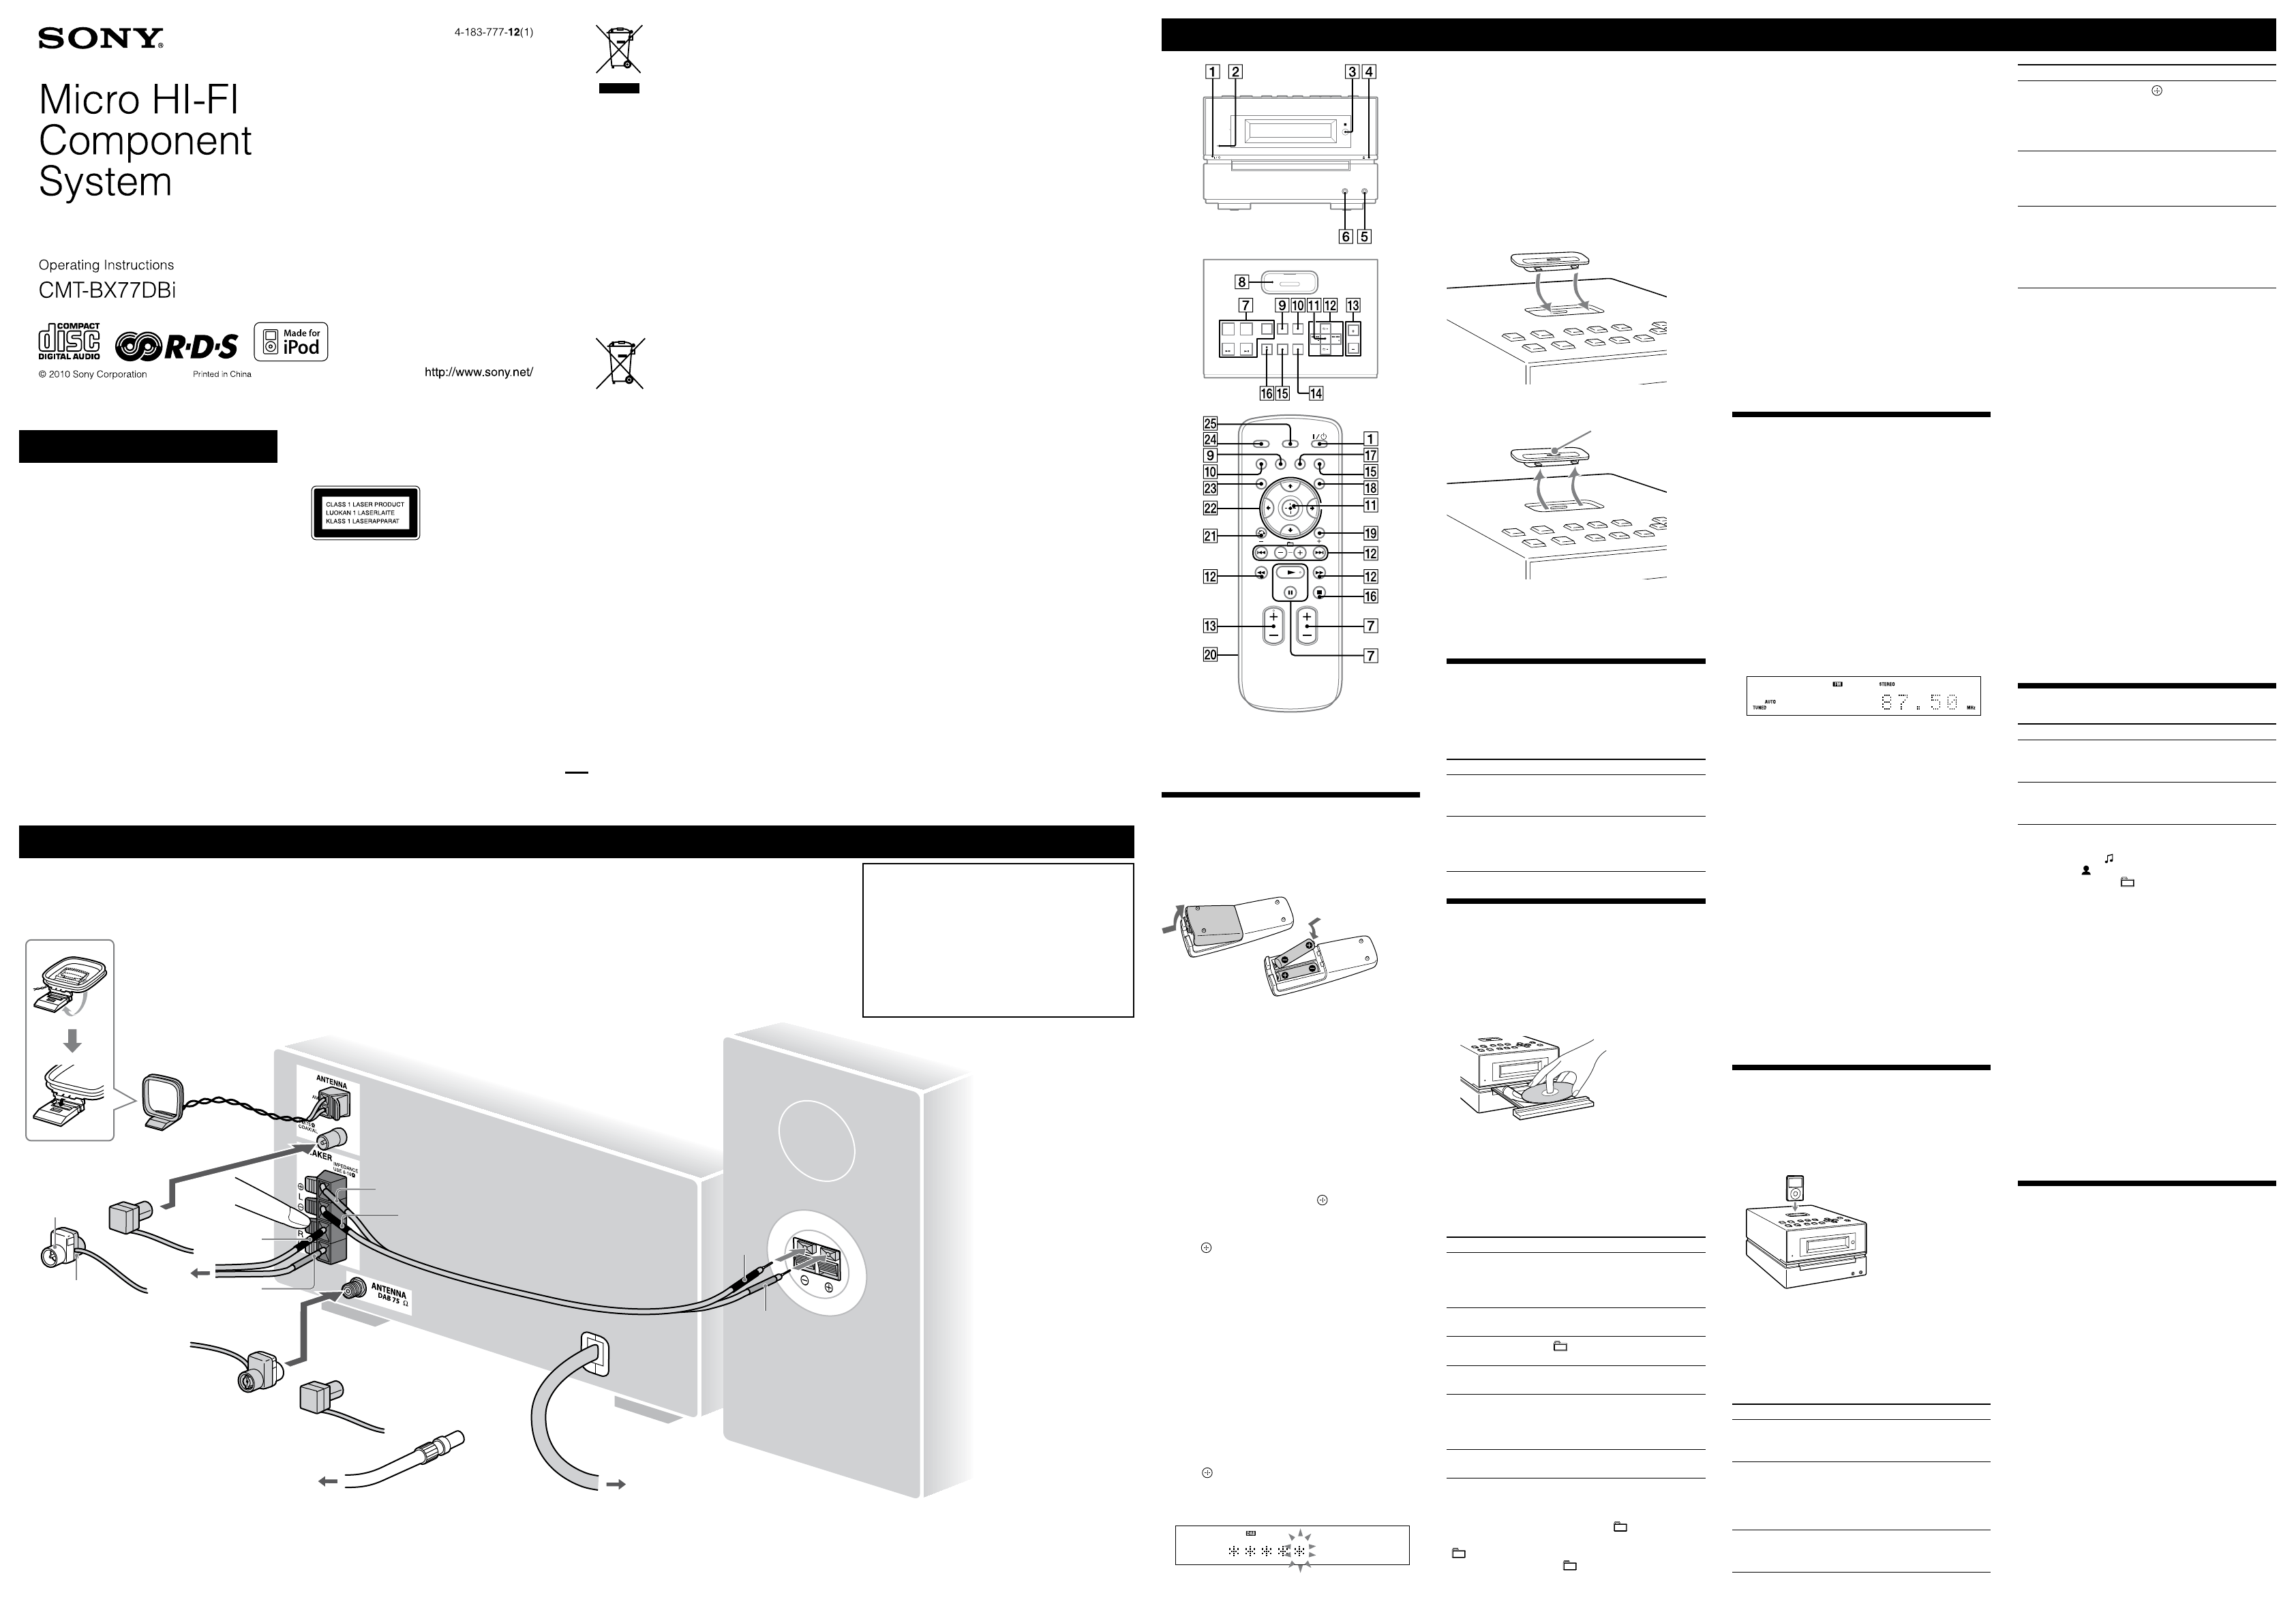 sony stereo system cmt bx77dbi user guide manualsonline com rh manualsonline com Sony CMT White 2004 Sony LX20I